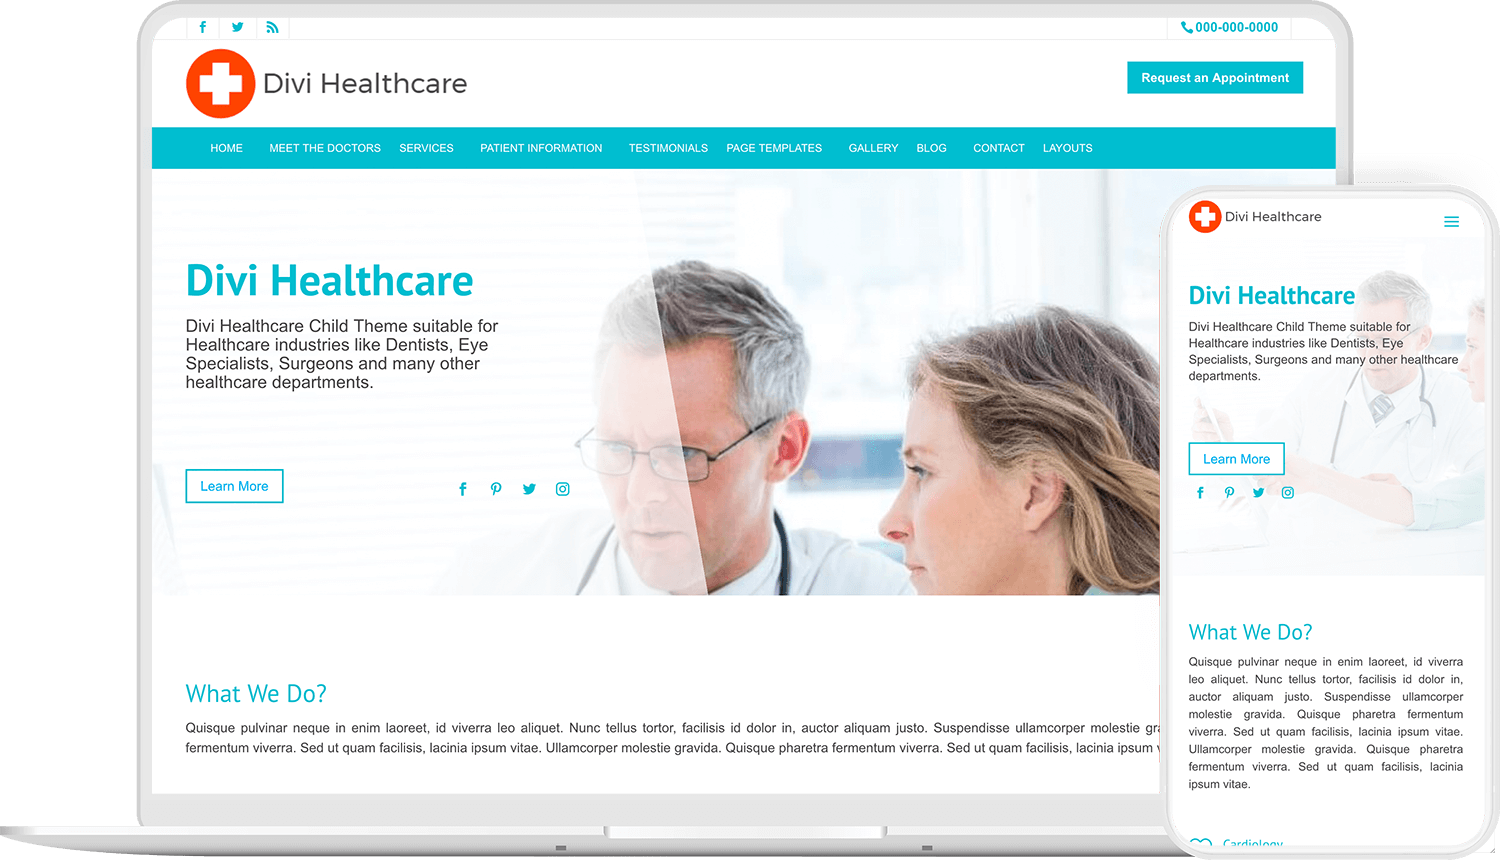 Divi Healthcare